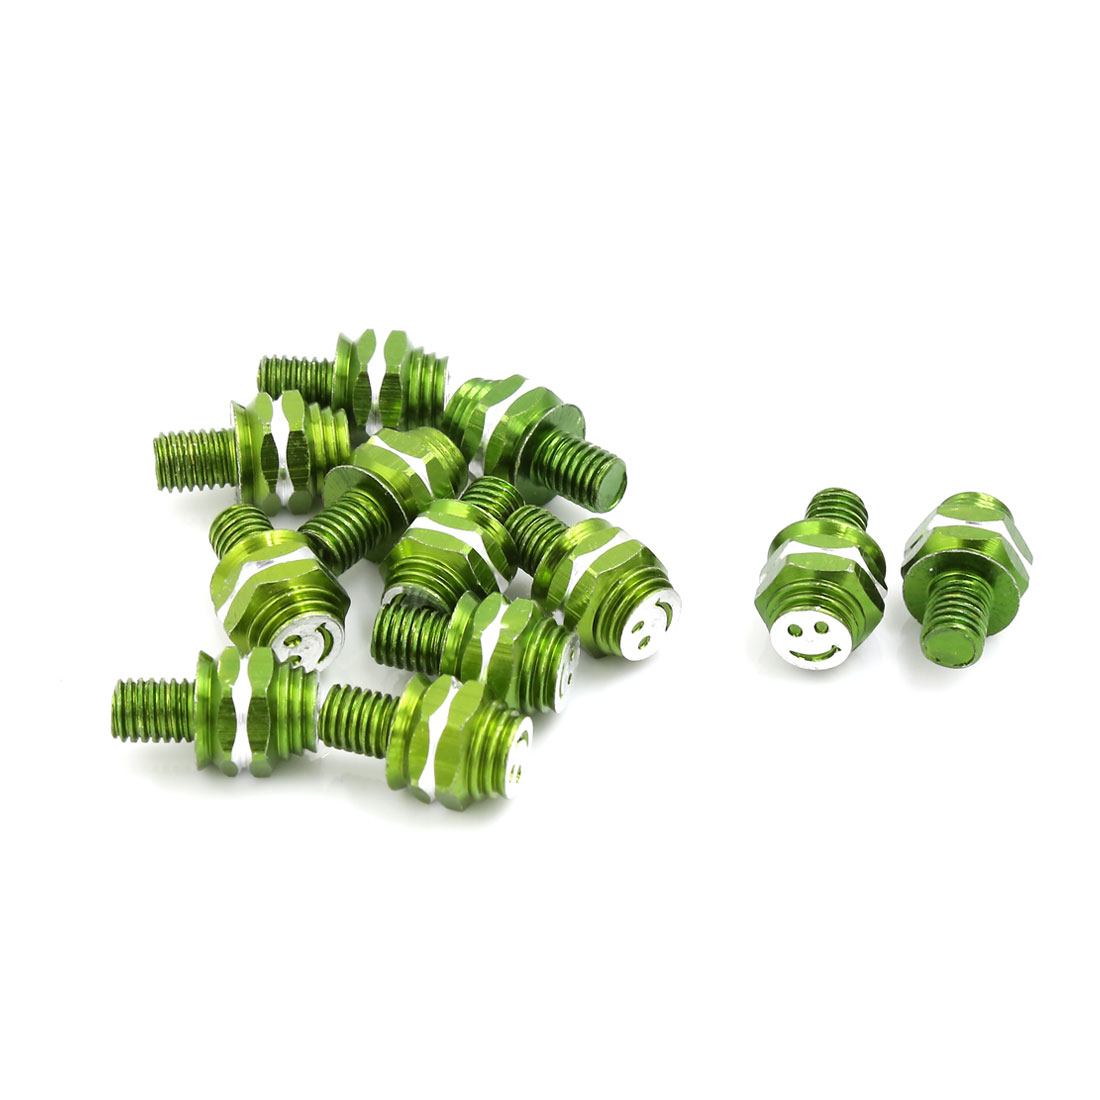 23mm x 7mm Car Motorcycle License Plate Screws Decoration Green 12 Pcs